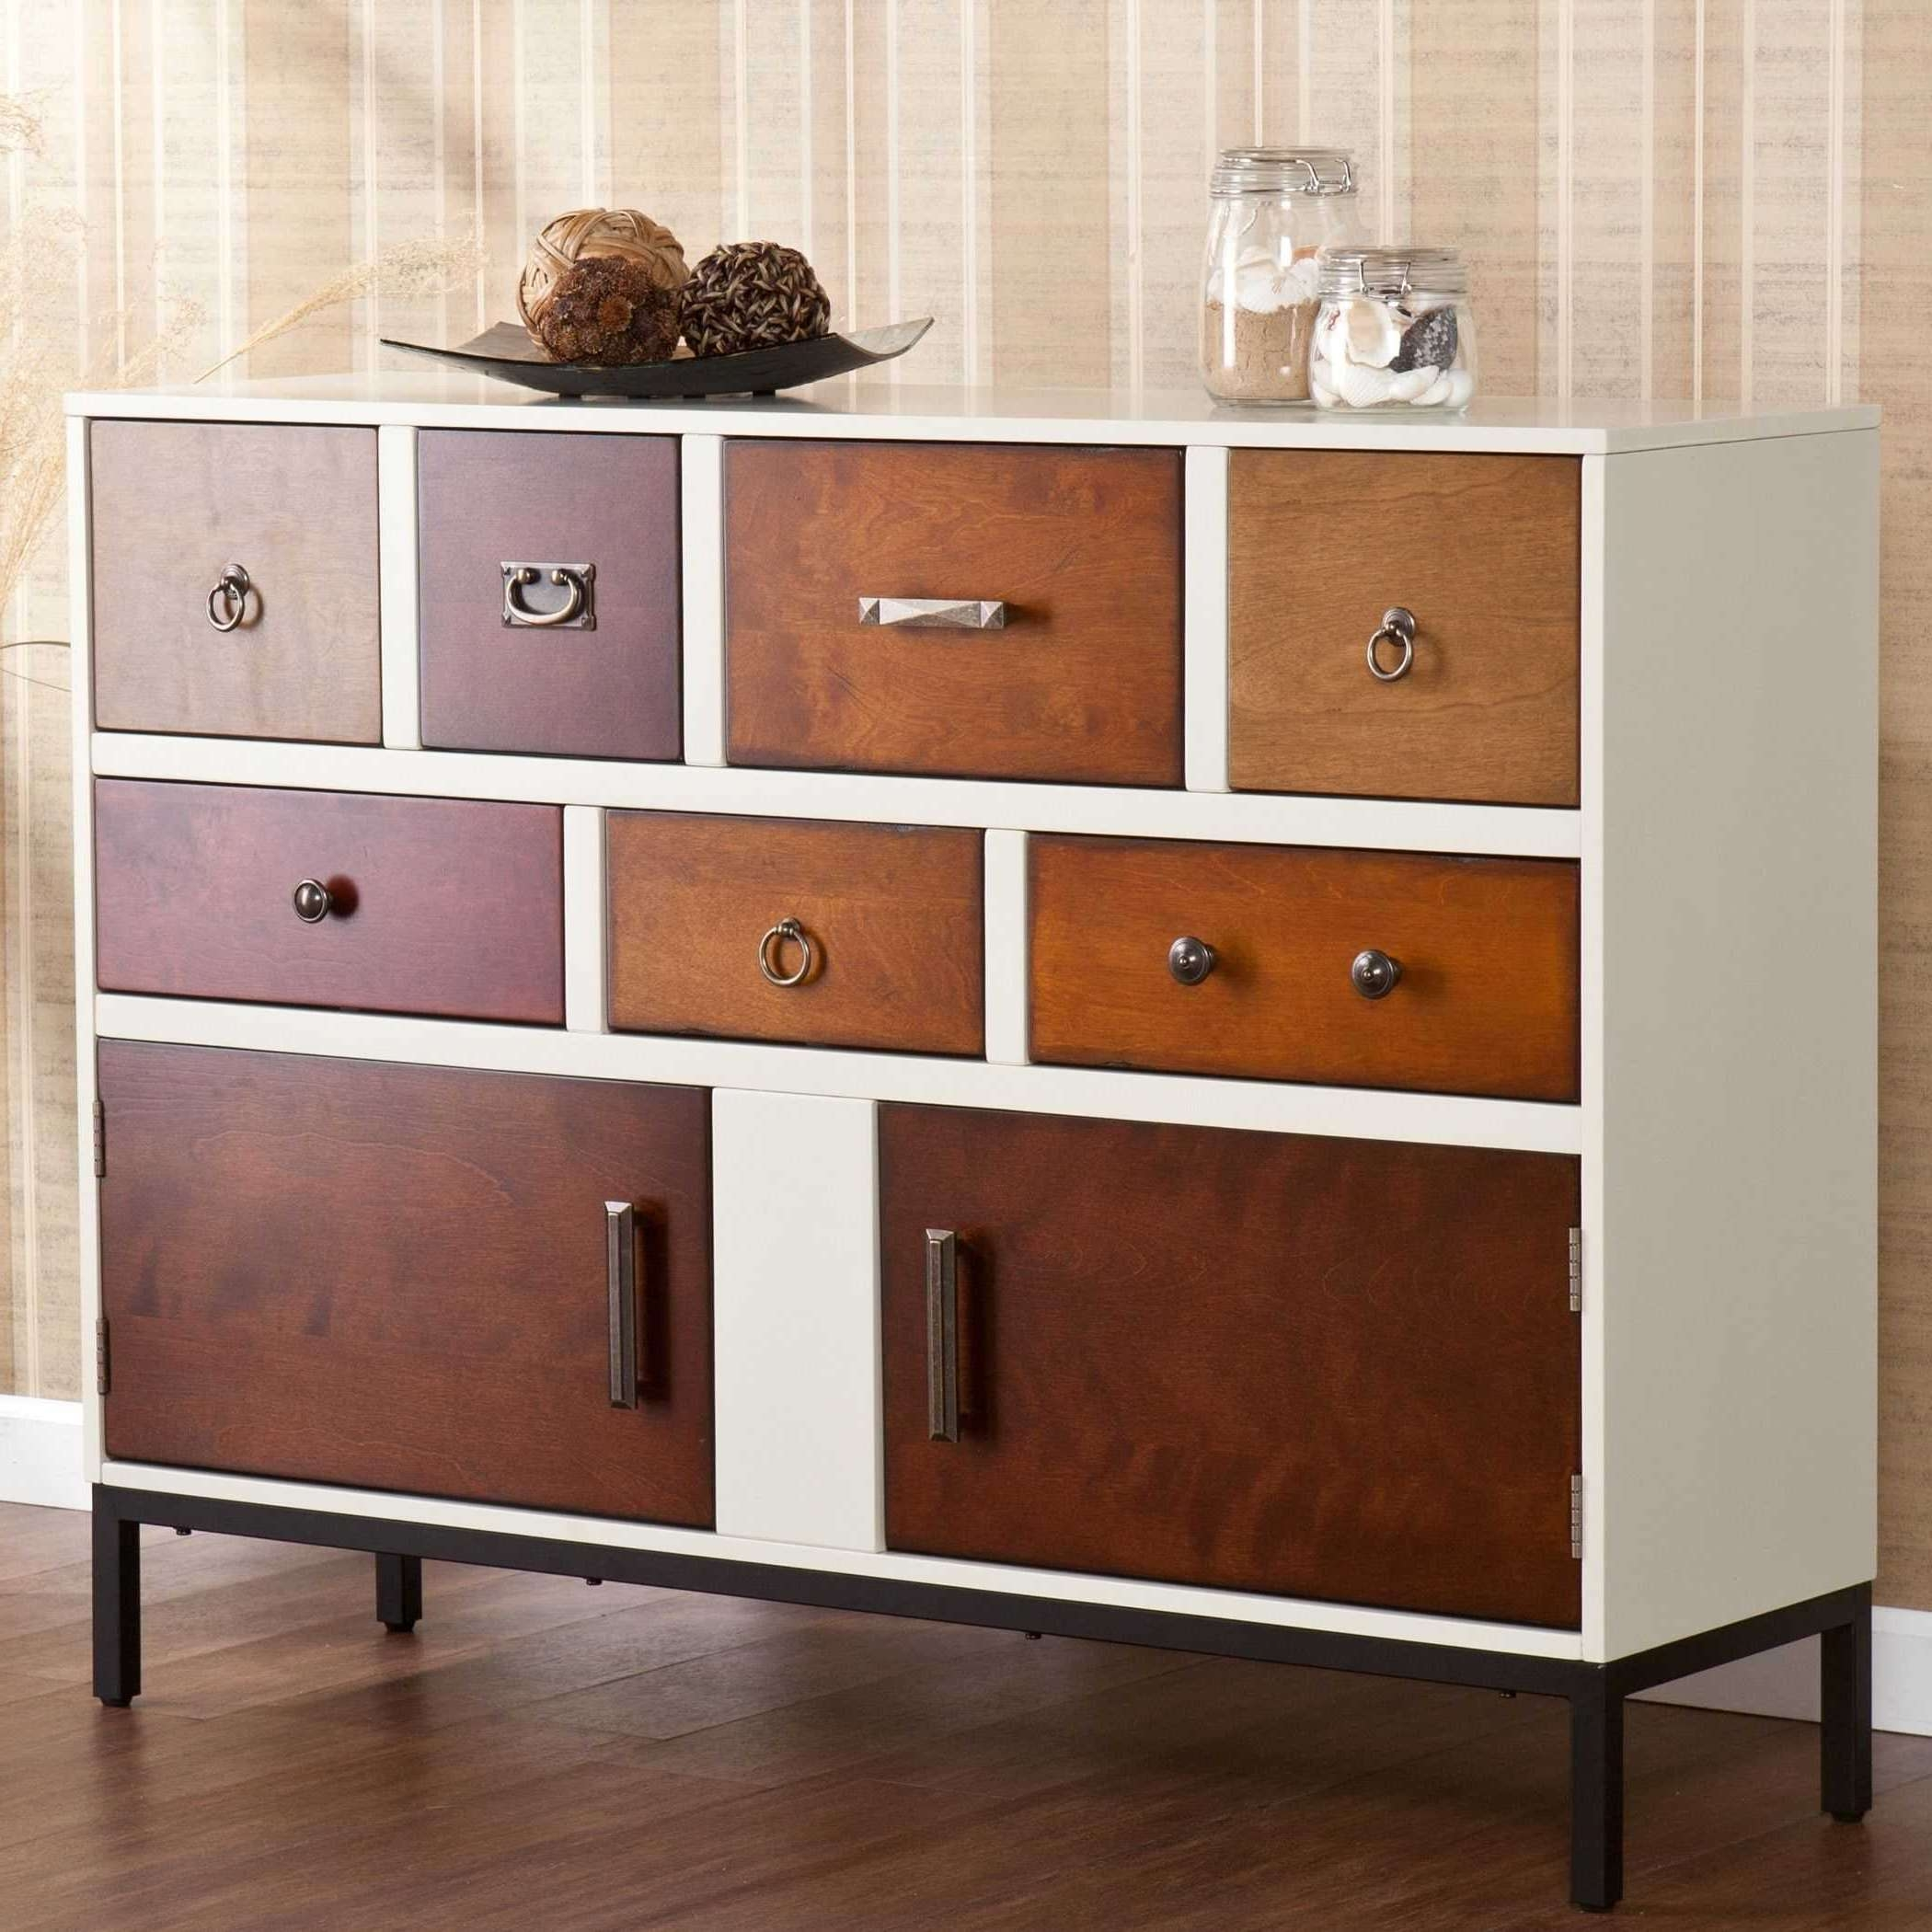 Best Dining Room Consoles Buffets Images – Liltigertoo For Overstock Sideboards (View 18 of 20)